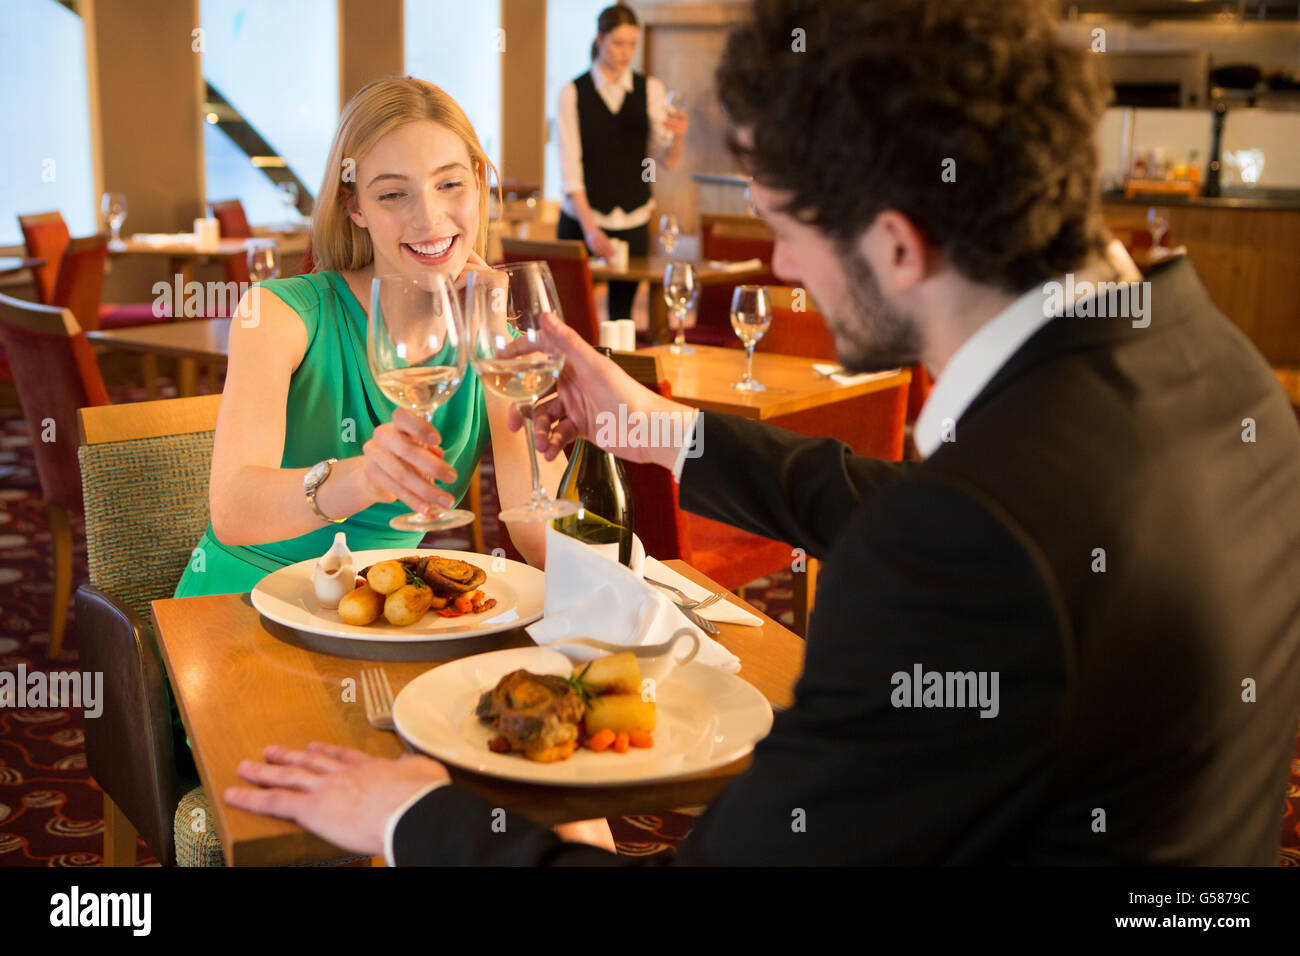 Young couple toasting their glasses of champagne over a meal in a restaurant. - Stock Image